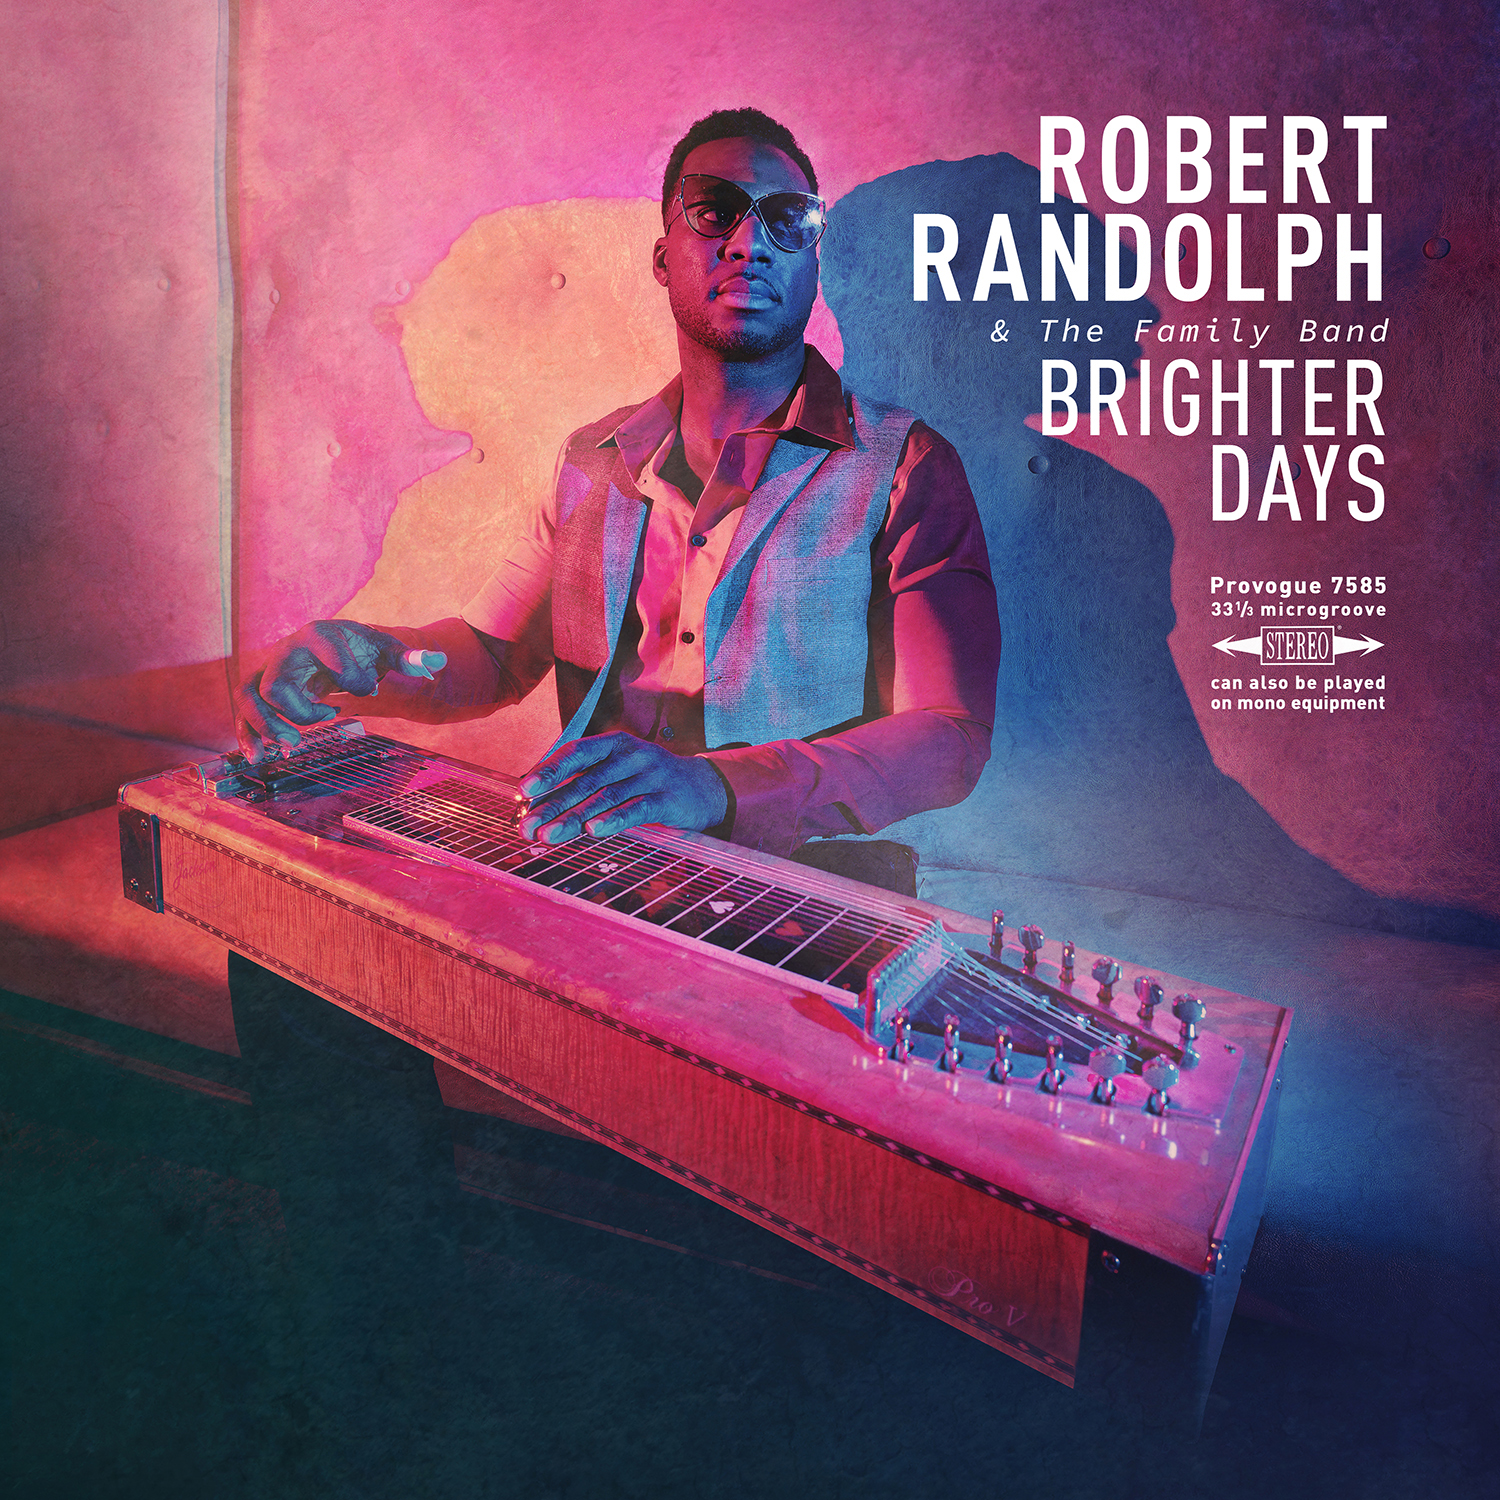 <h5>Robert Randolph <br>& The Family Band<br>Brighter Days</h5>